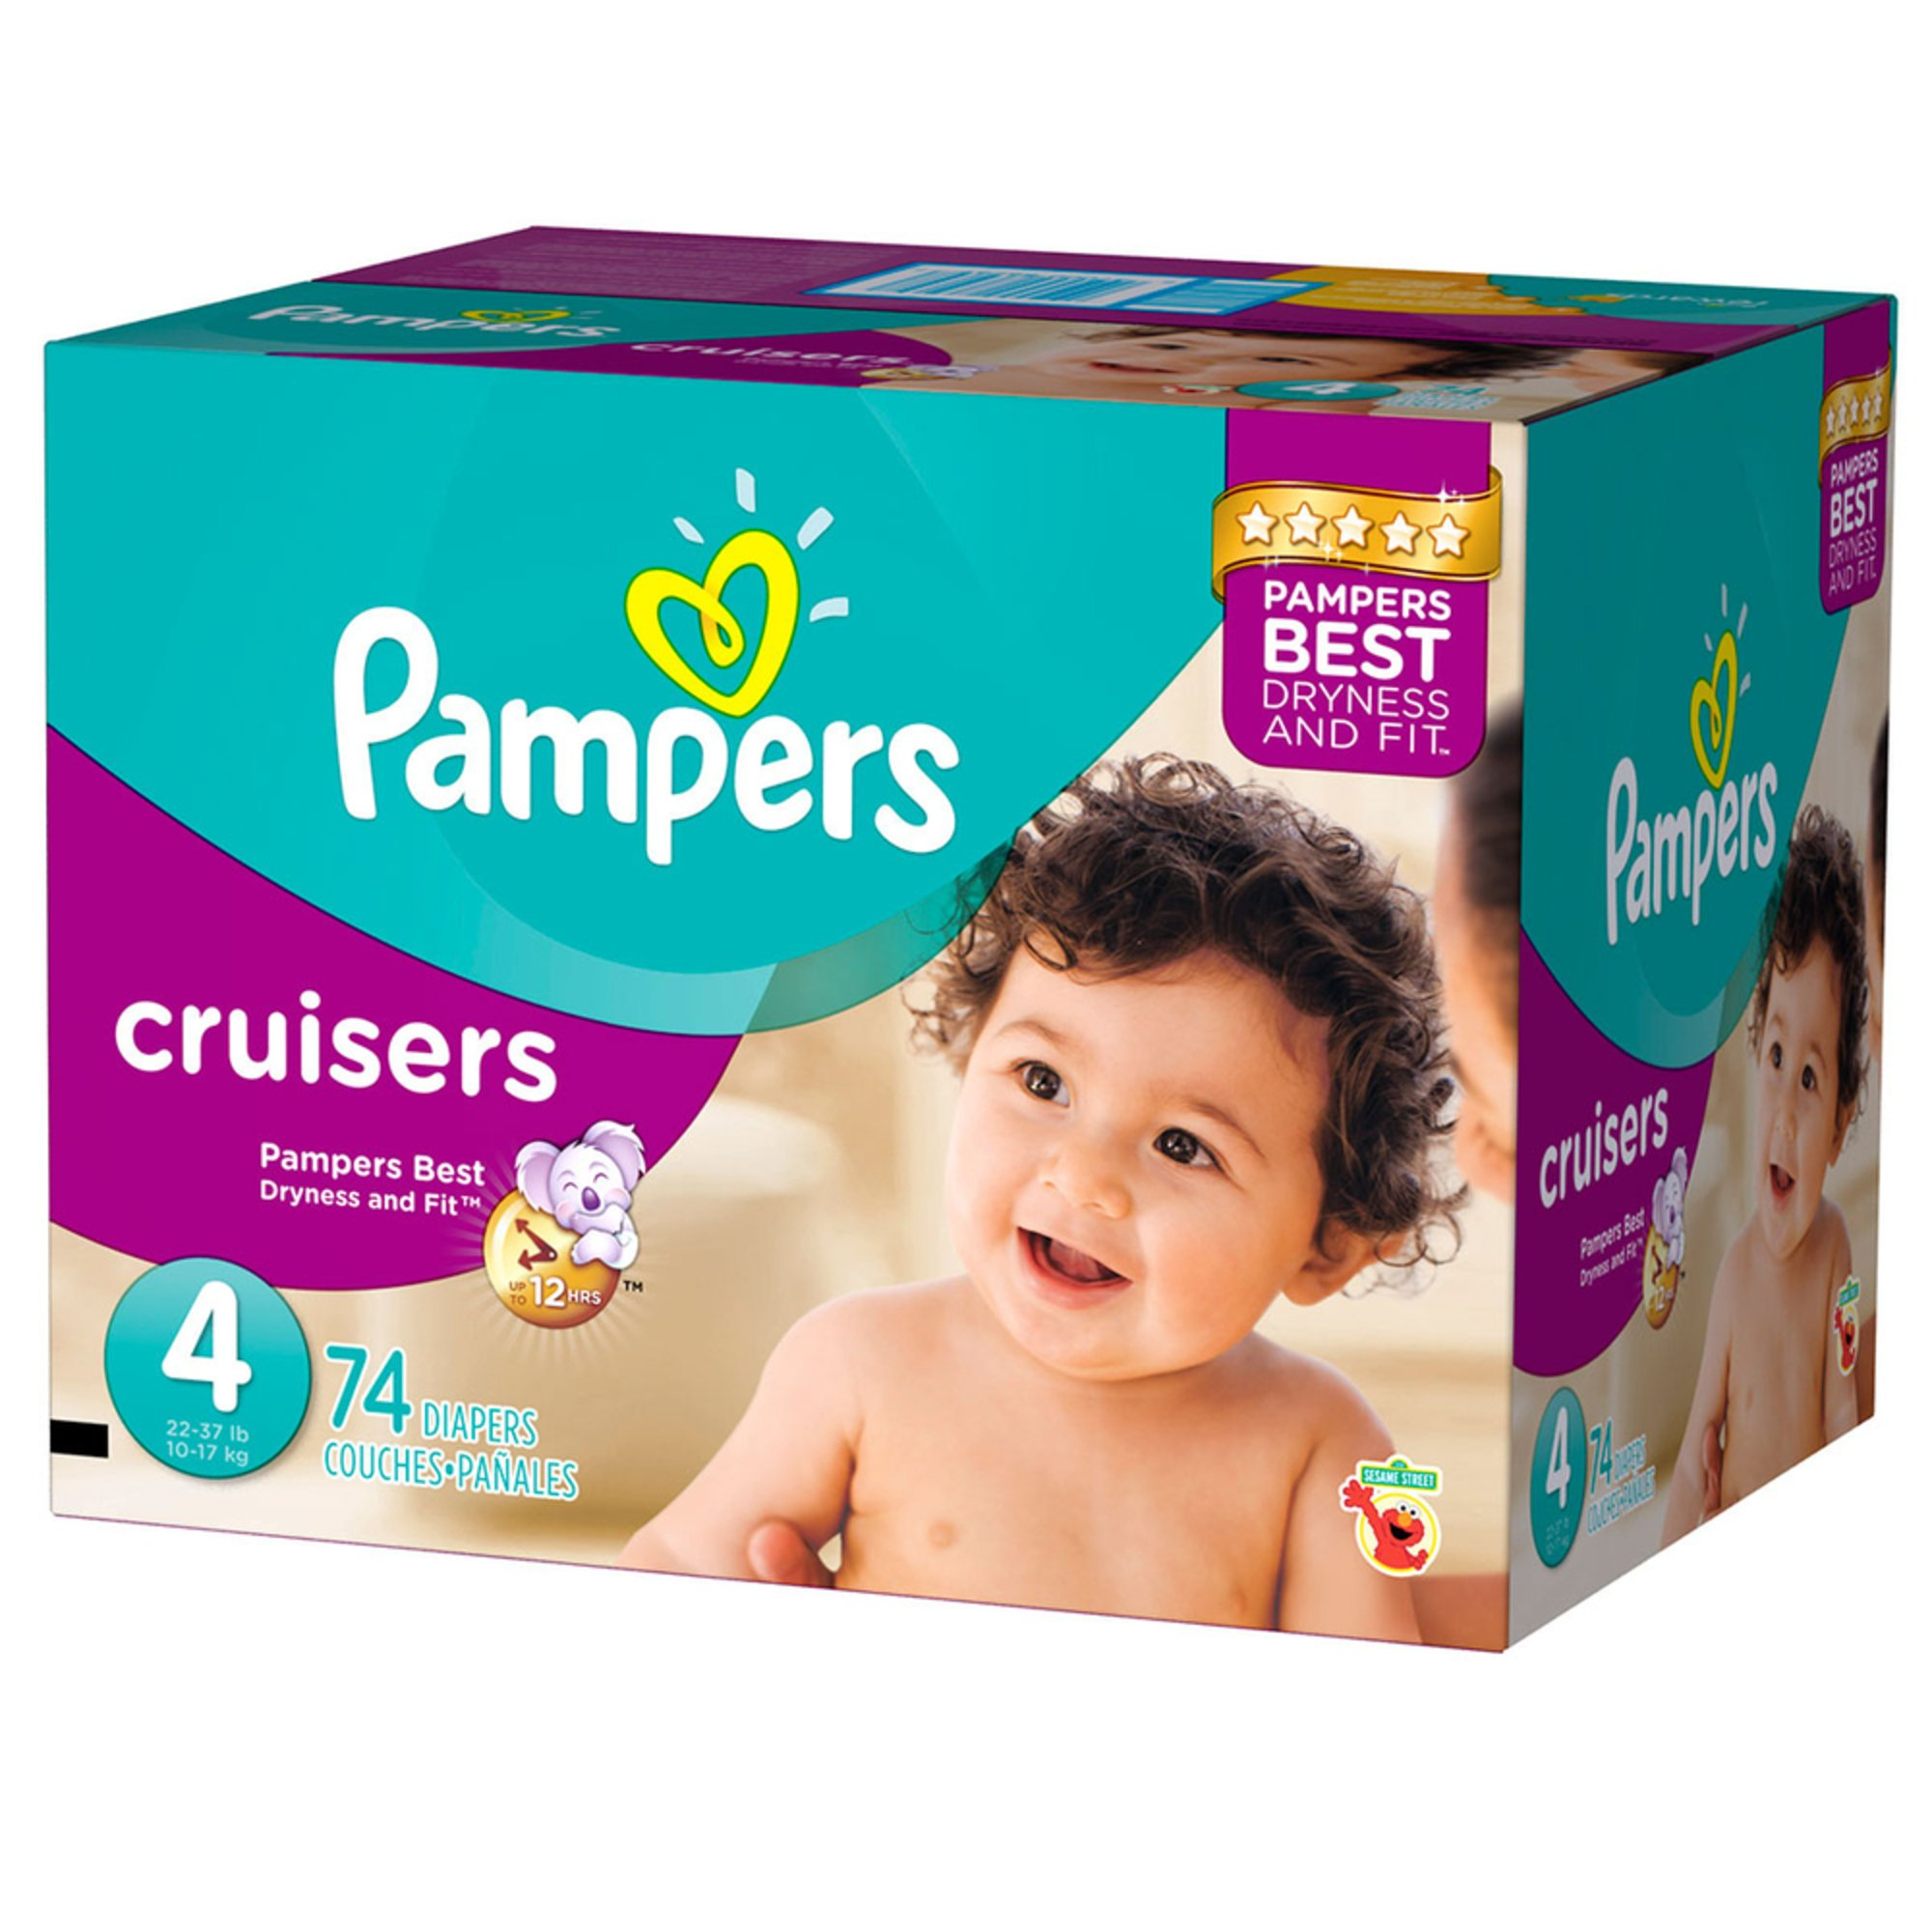 Pampers cruisers size 4 super pack 74 count disposable 0 nvjuhfo Image collections